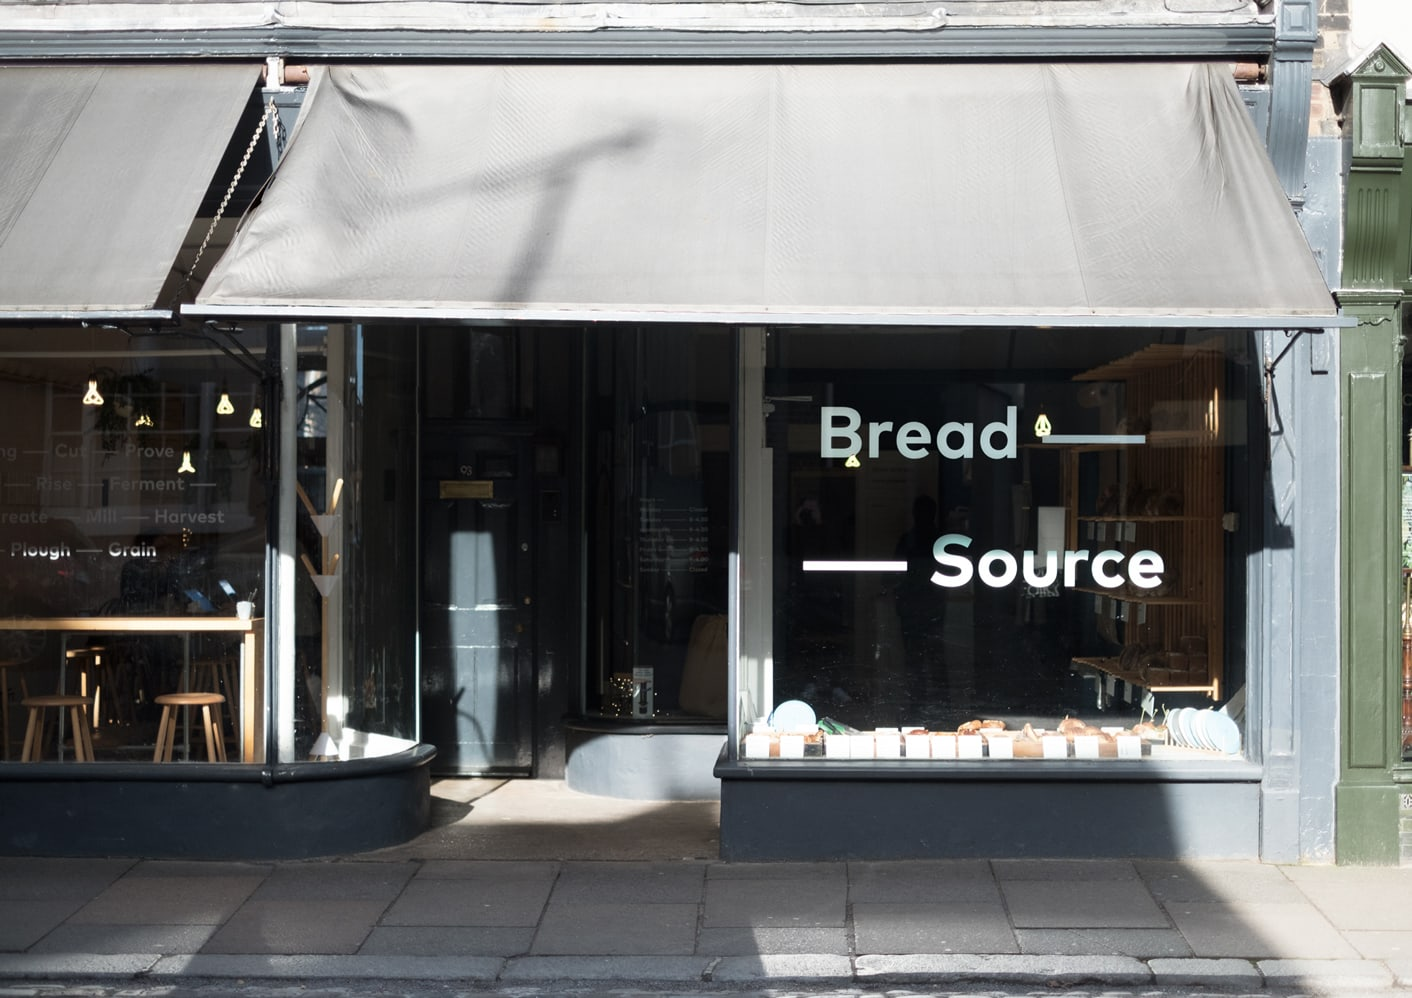 Bread Source artisan bakery shop front